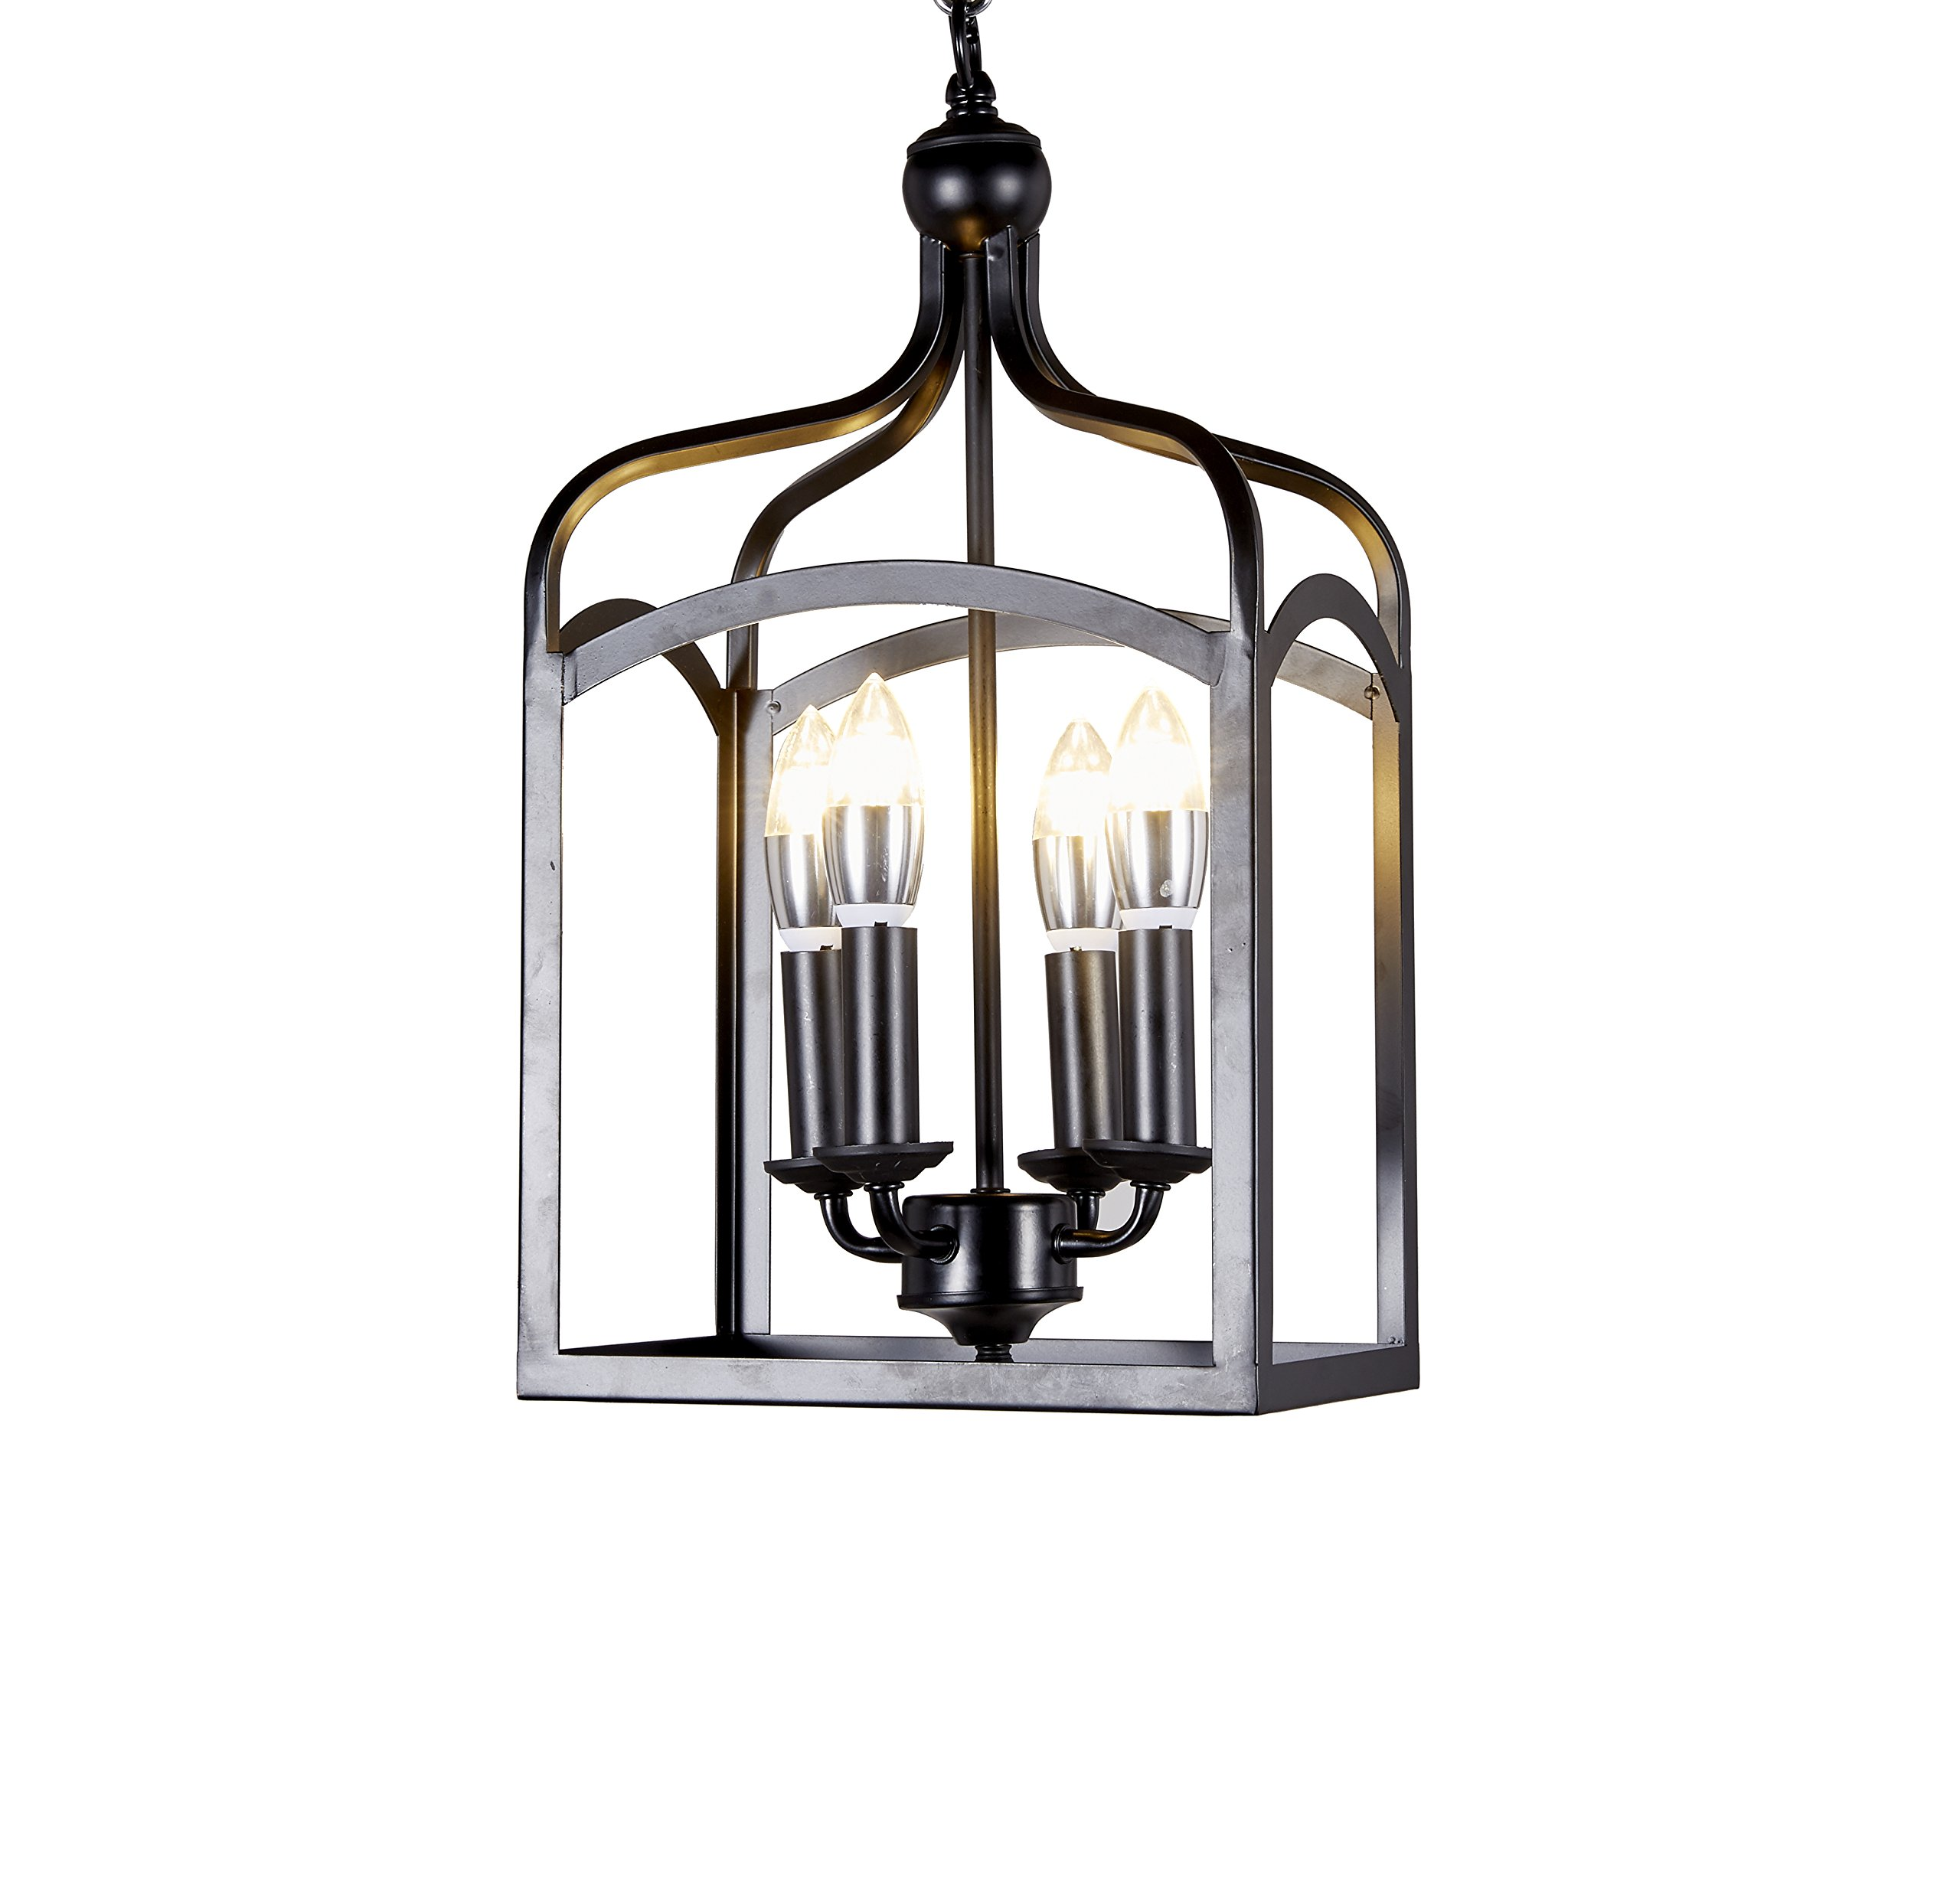 "New Galaxy Lighting Antique Black Finish 4-Light Hanging Lantern Iron Frame Pedant Chandelier - Antique Style Hanging Pedant Ceiling Fixture Fixture:10""Wx7""Dx21""H, Chain: 27"" long, Total height: 24""to 48"" adjustable; Ceiling cover: 5.5""Wx1.5""H Requires four(4) E12 candelabra base bulbs (not included) up to 40 watts each - kitchen-dining-room-decor, kitchen-dining-room, chandeliers-lighting - 81J3zhE5scL -"